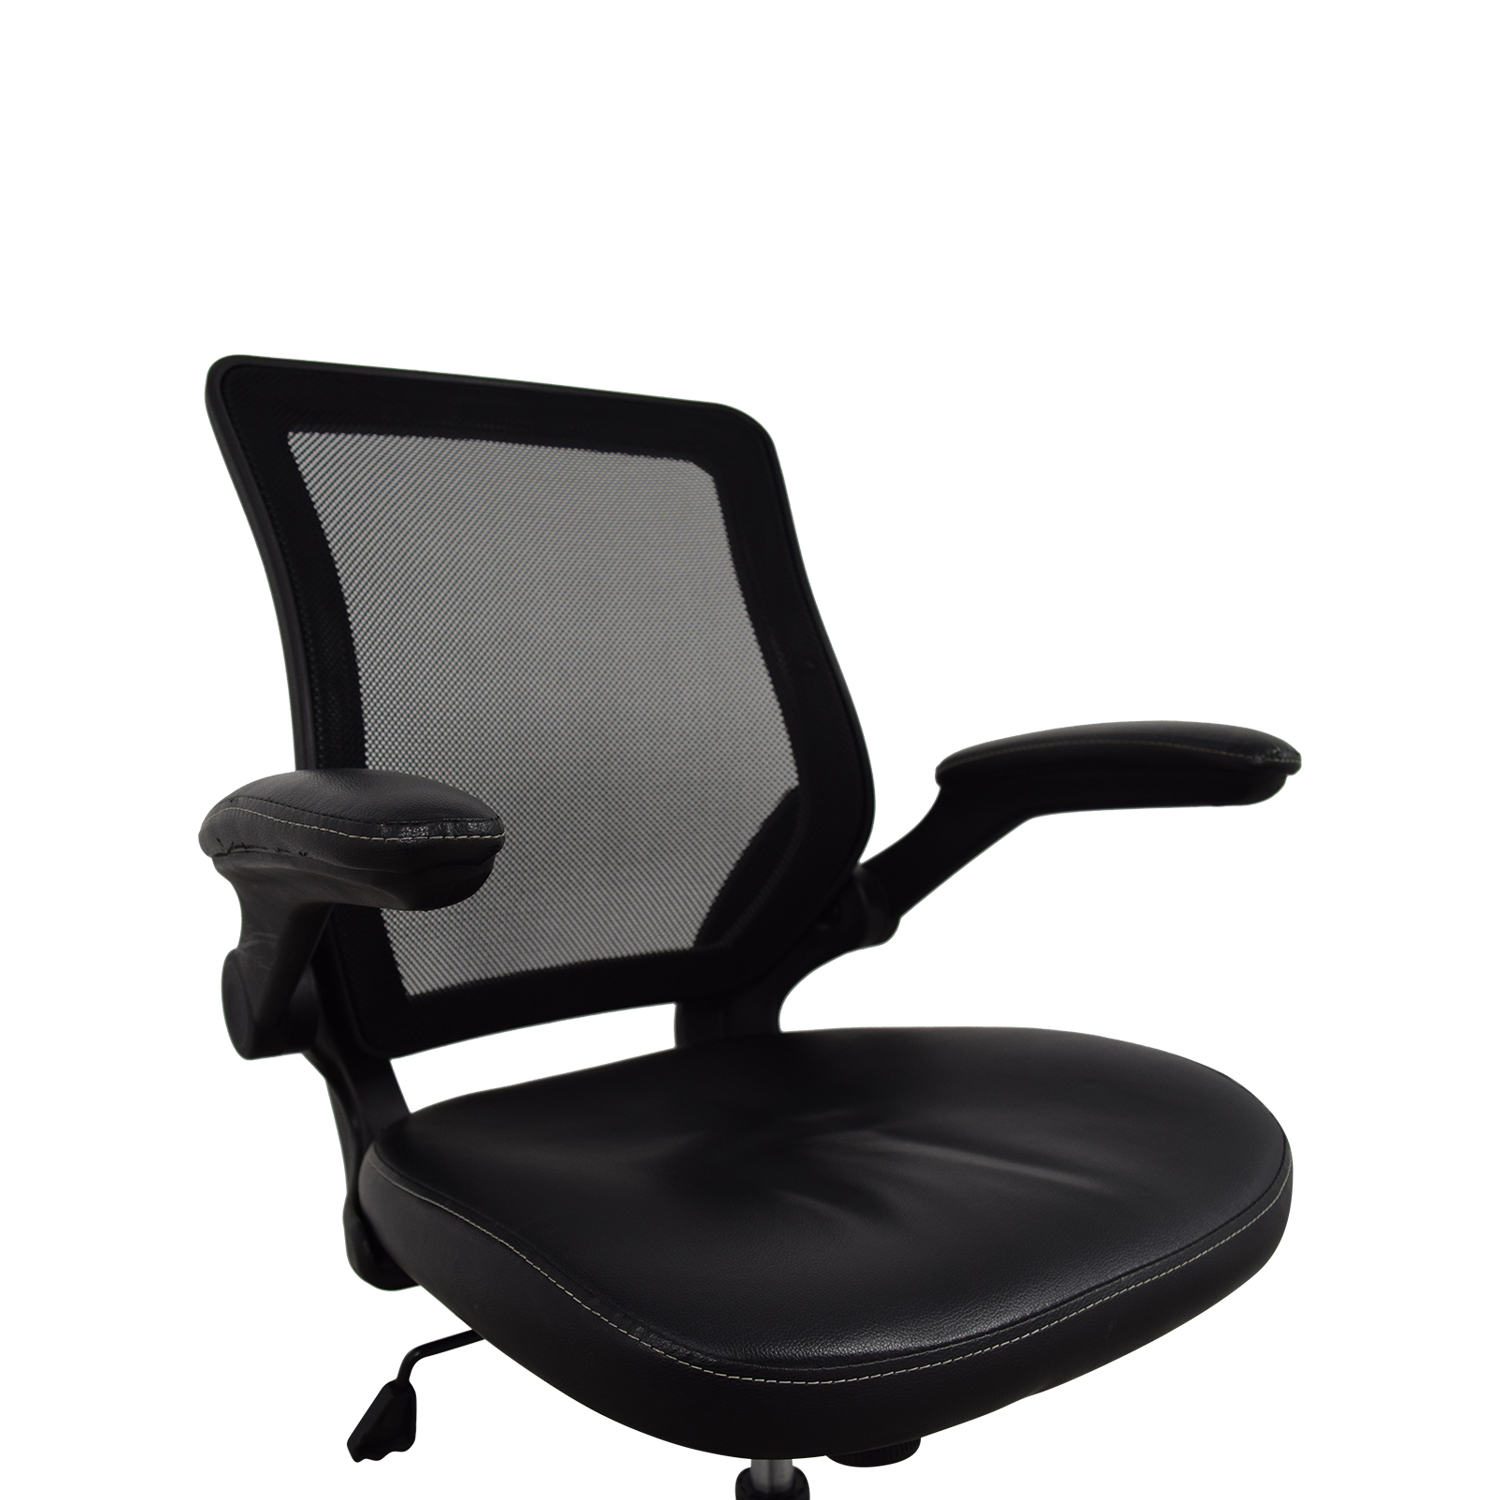 72 off adjustable black office arm chair chairs. Black Bedroom Furniture Sets. Home Design Ideas